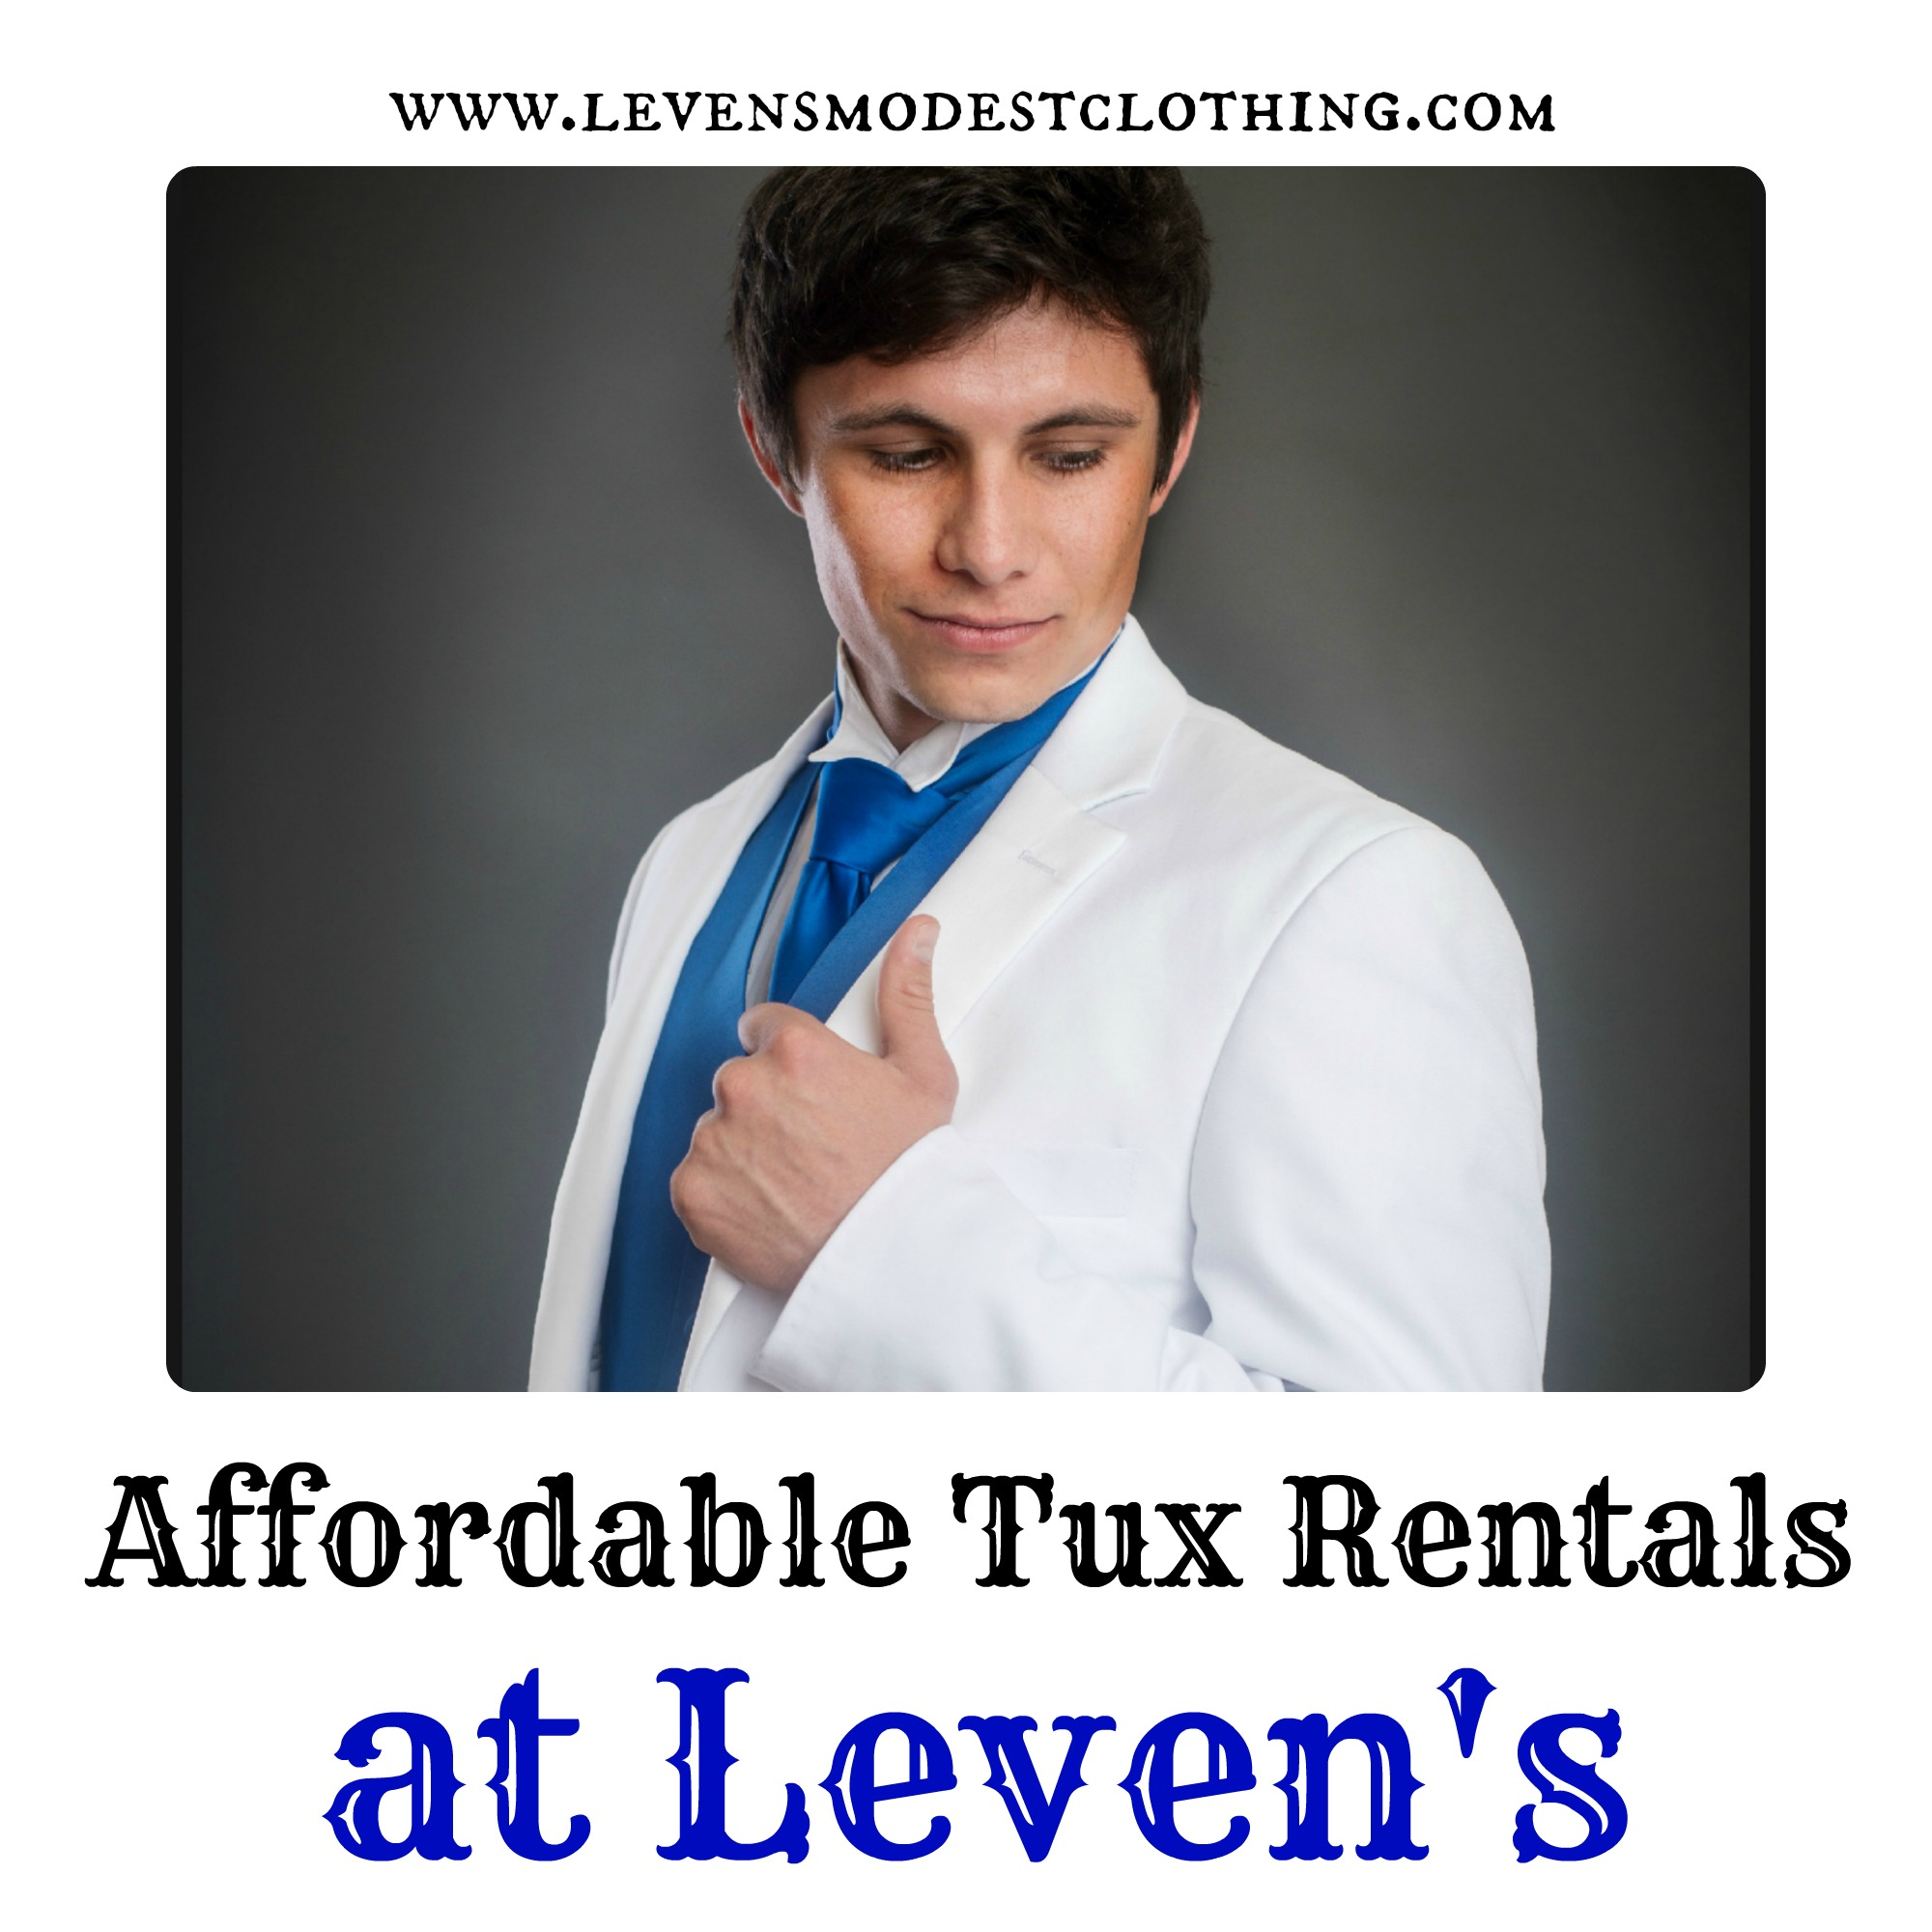 Affordable Tuxes